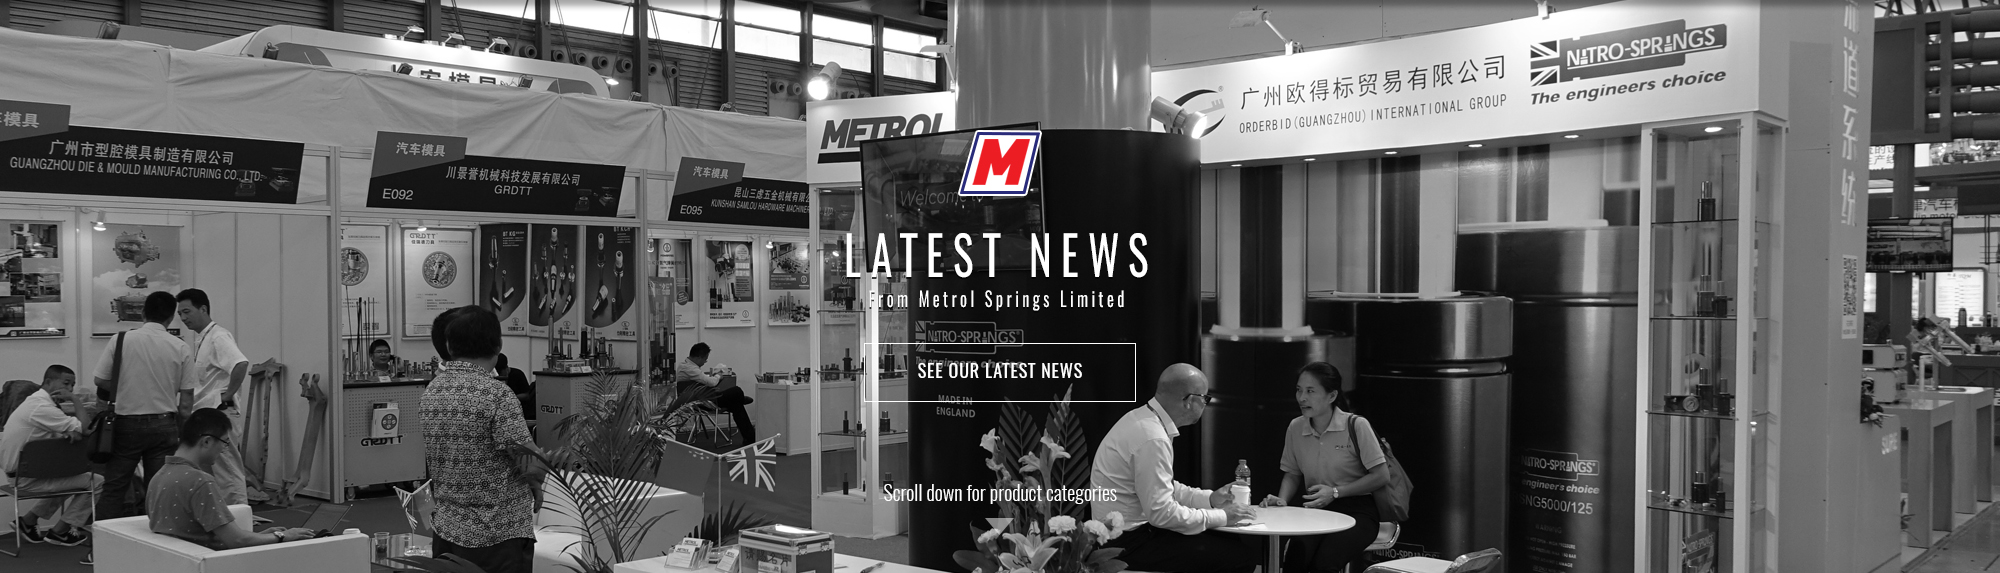 Metrol Springs Limited - Latest News